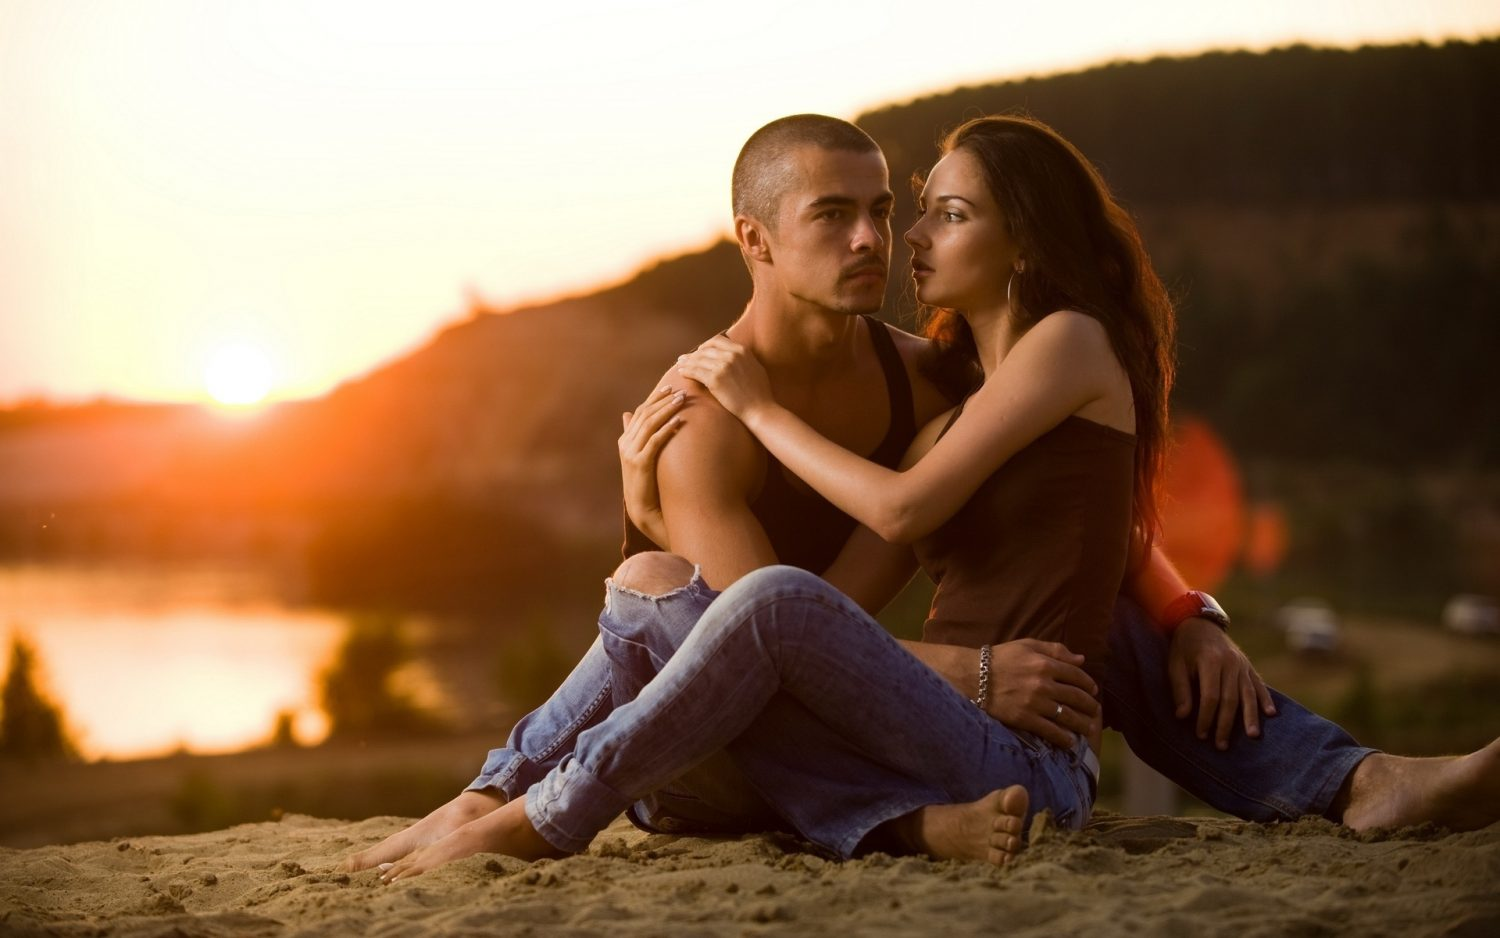 couple_love_romance_sunset_25671_3840x2400